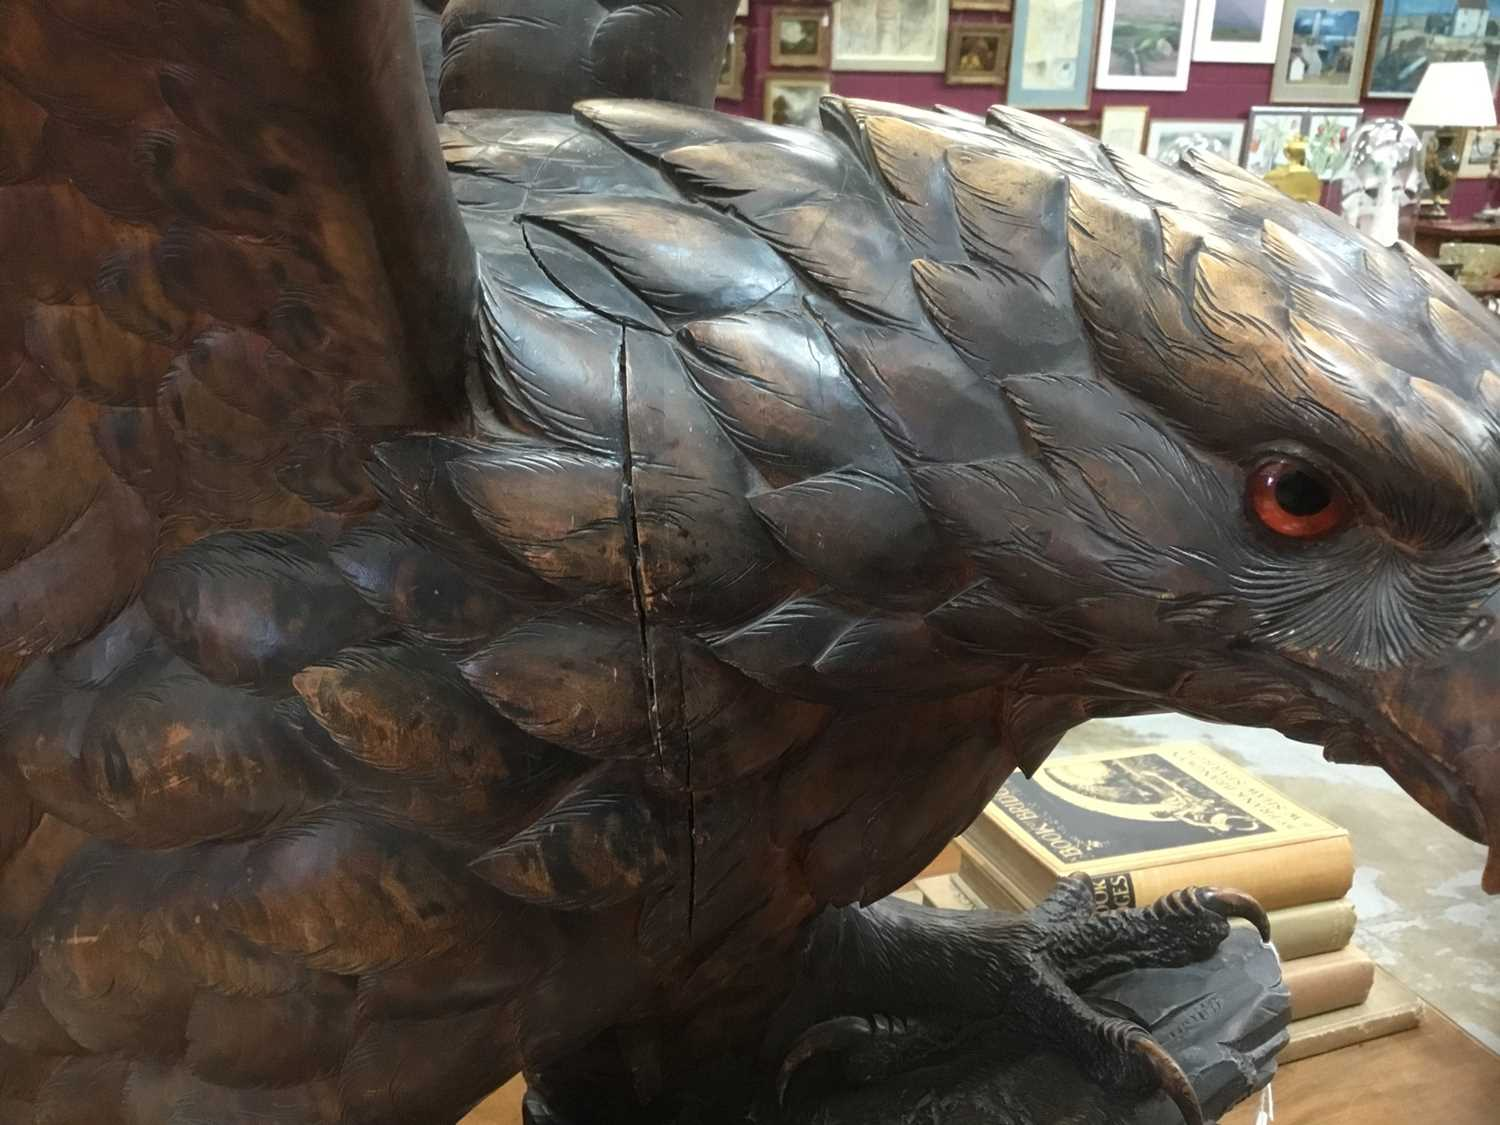 Exceptional late 19th / early 20th century Black Forest carved lindenwood figure of an eagle - Image 15 of 28